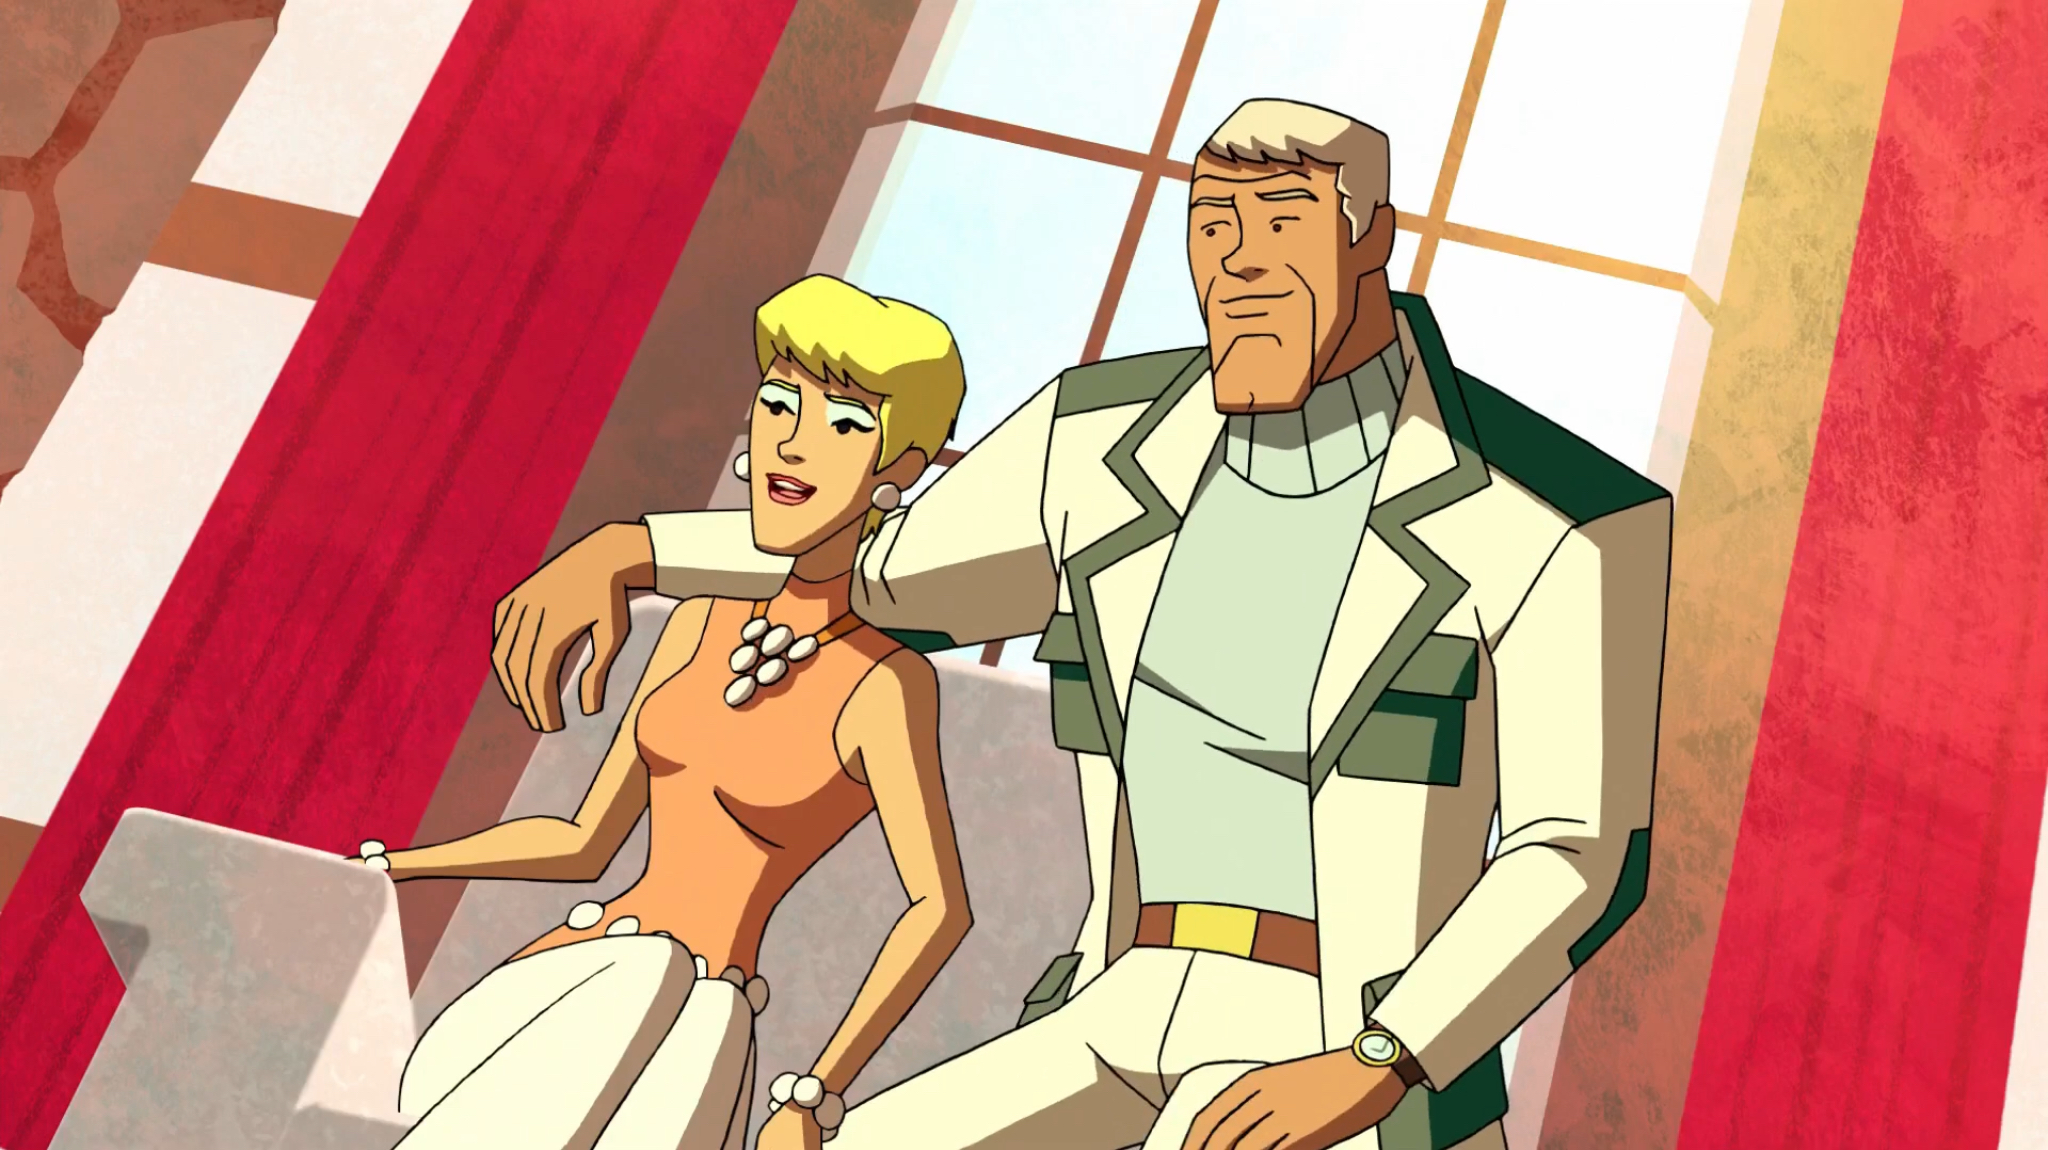 Tia Carrere and Tim Matheson in Scooby-Doo! Mystery Incorporated (2010)